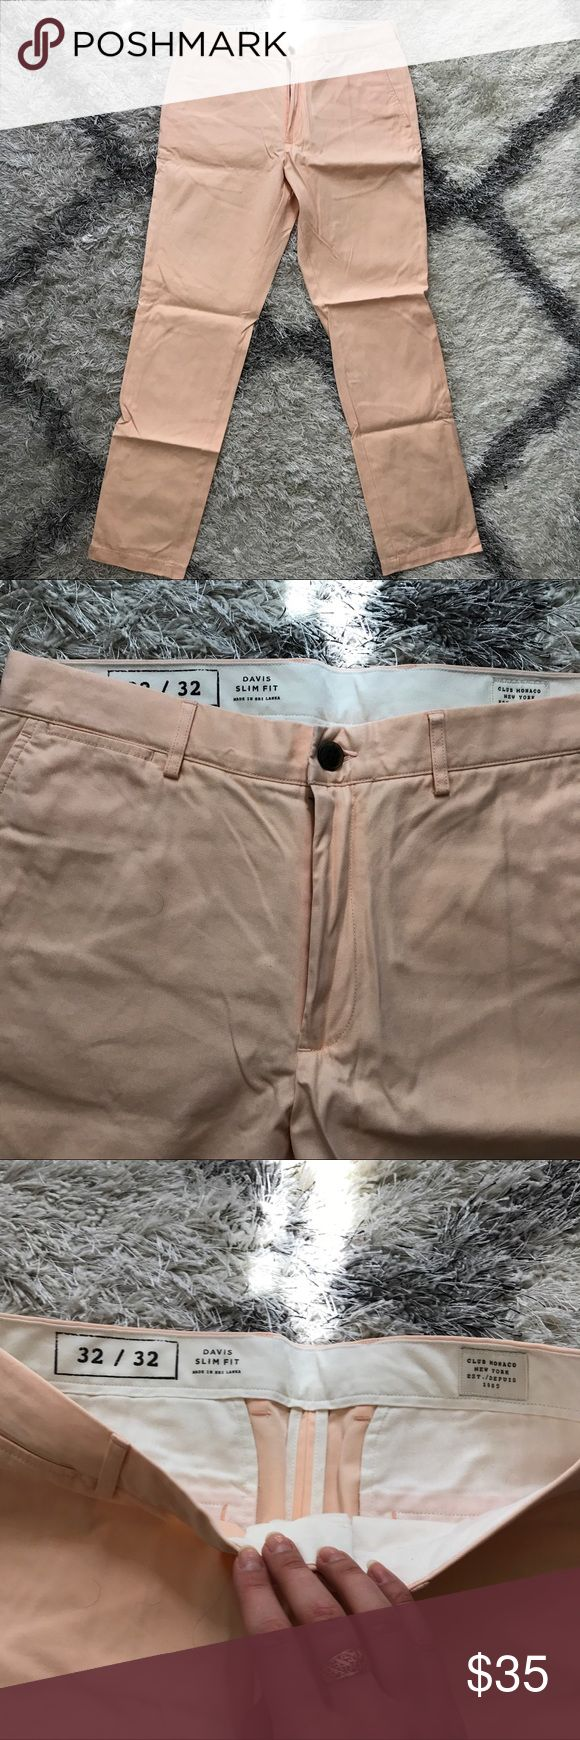 Men's Club Monaco slim fit chinos men's chinos. Slim fit. 32x32 True to size. Worn once. Great Condition. Peach color Club Monaco Pants Chinos & Khakis